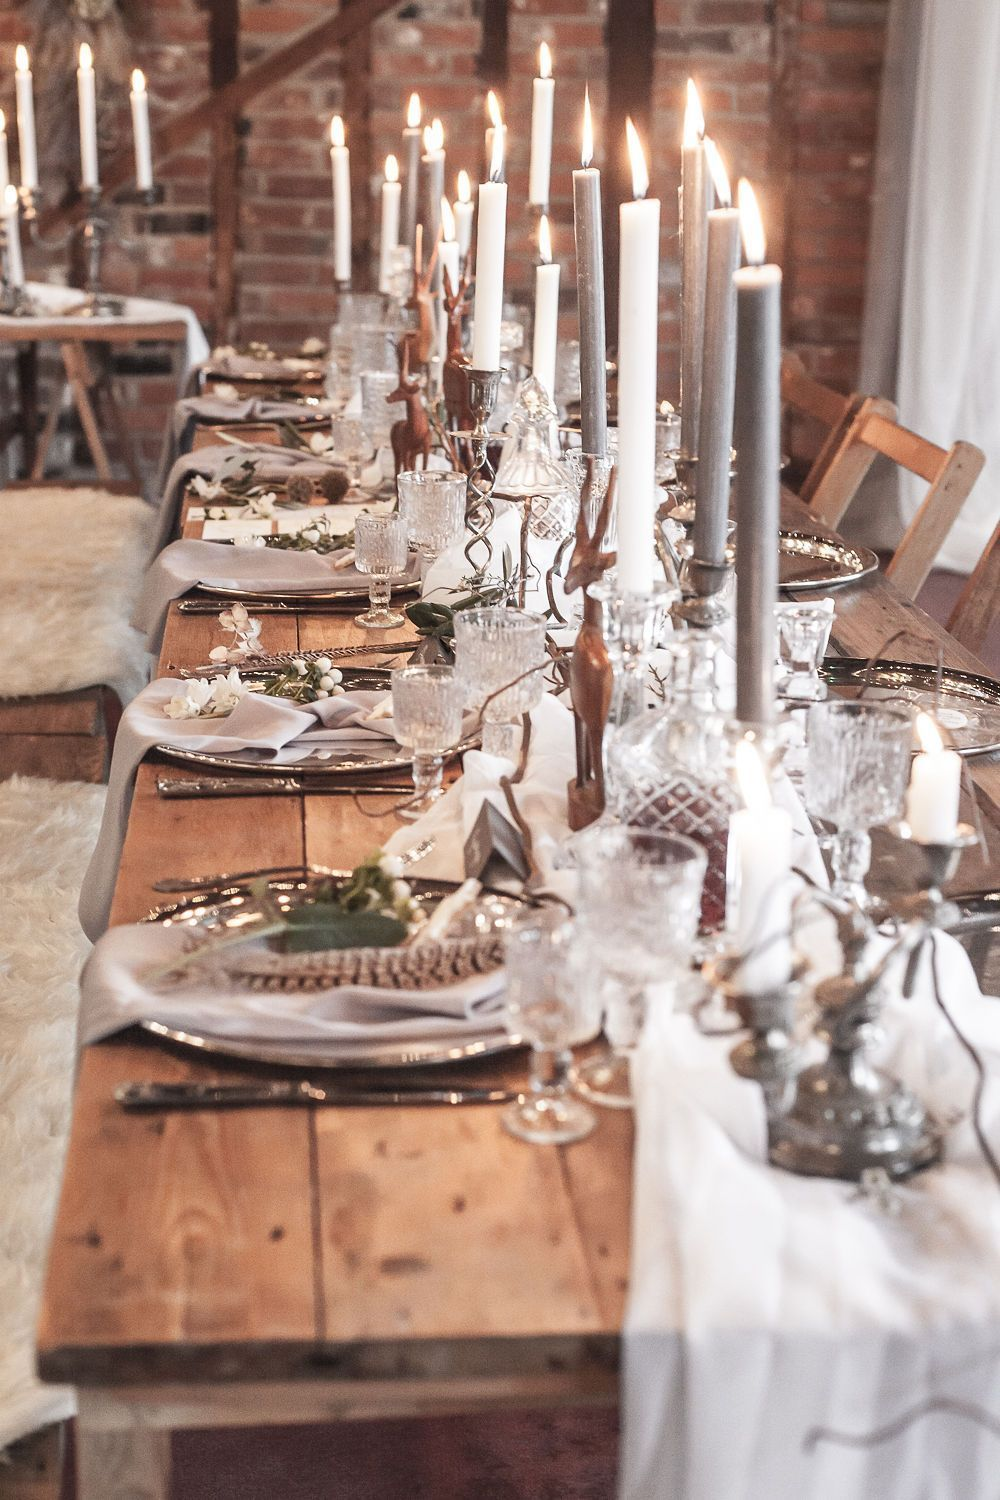 Styled Shoot || A Winter Wedding with a touch of Nordic Meets Narnia – brideandtonic.com  #tablescape #winterwedding #winterwonderland #narnia #nordic #icequeen #boholuxe